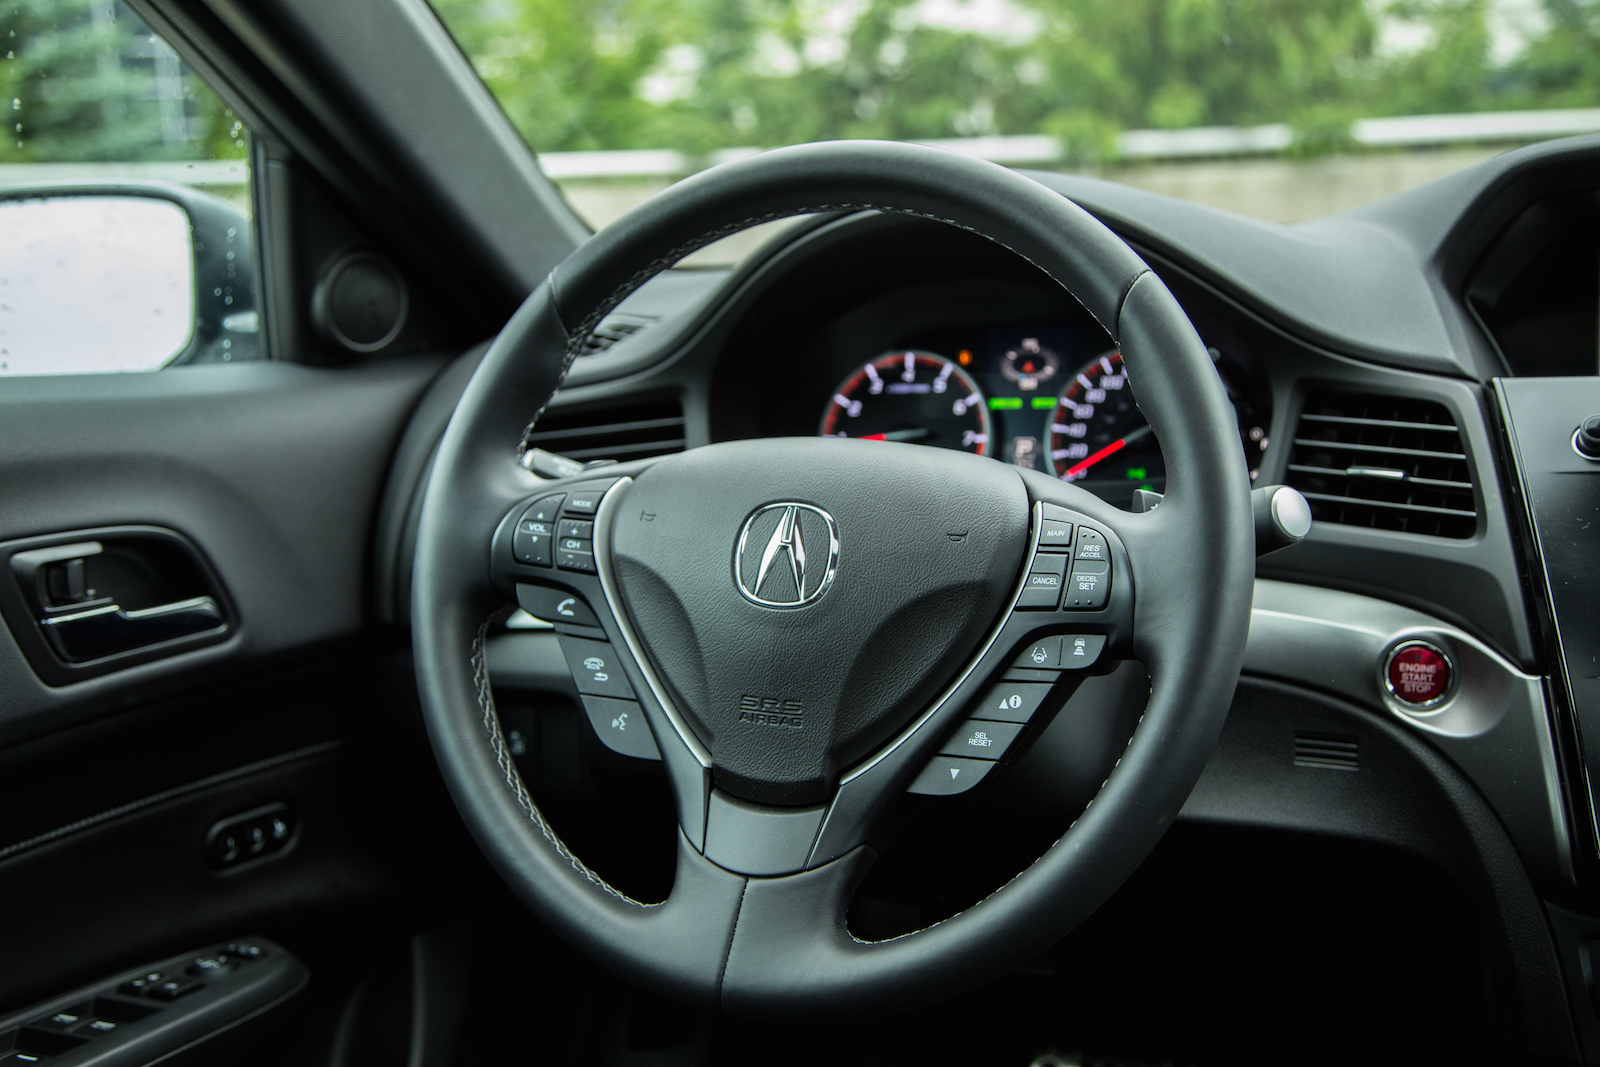 Review: 2016 Acura ILX A-Spec